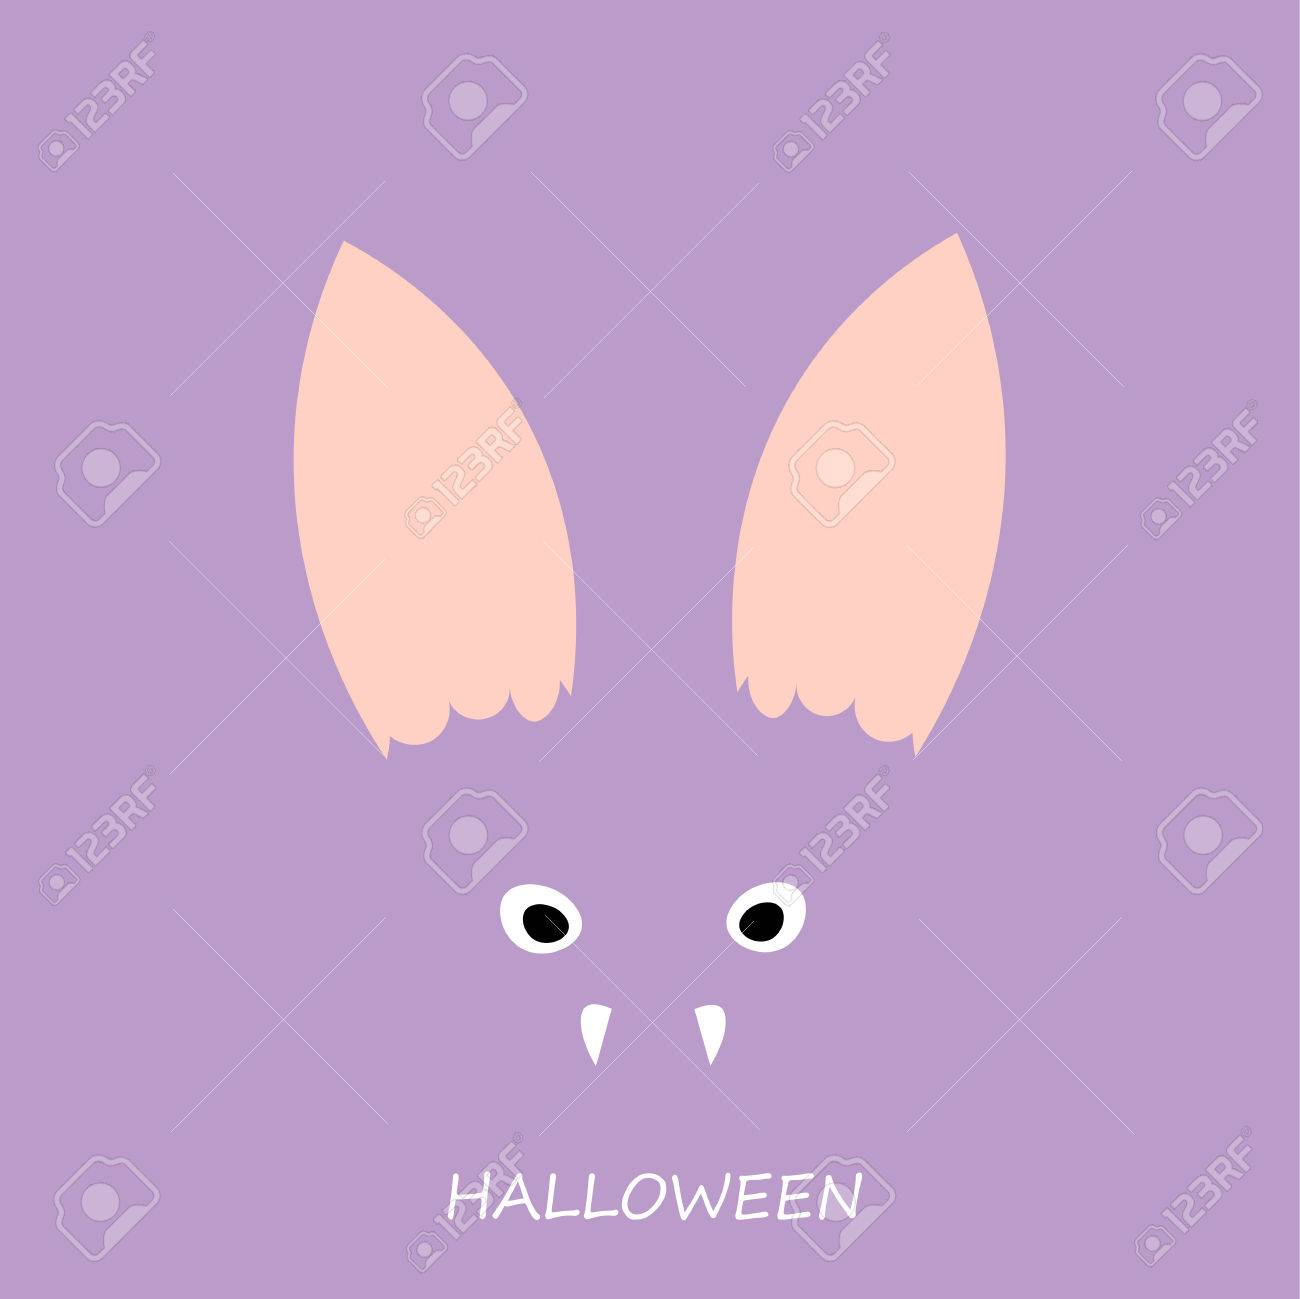 Beautiful Art Creative Colorful Halloween Holiday Wallpaper Vector Il Ration Of Cover With Closeup Face View Of